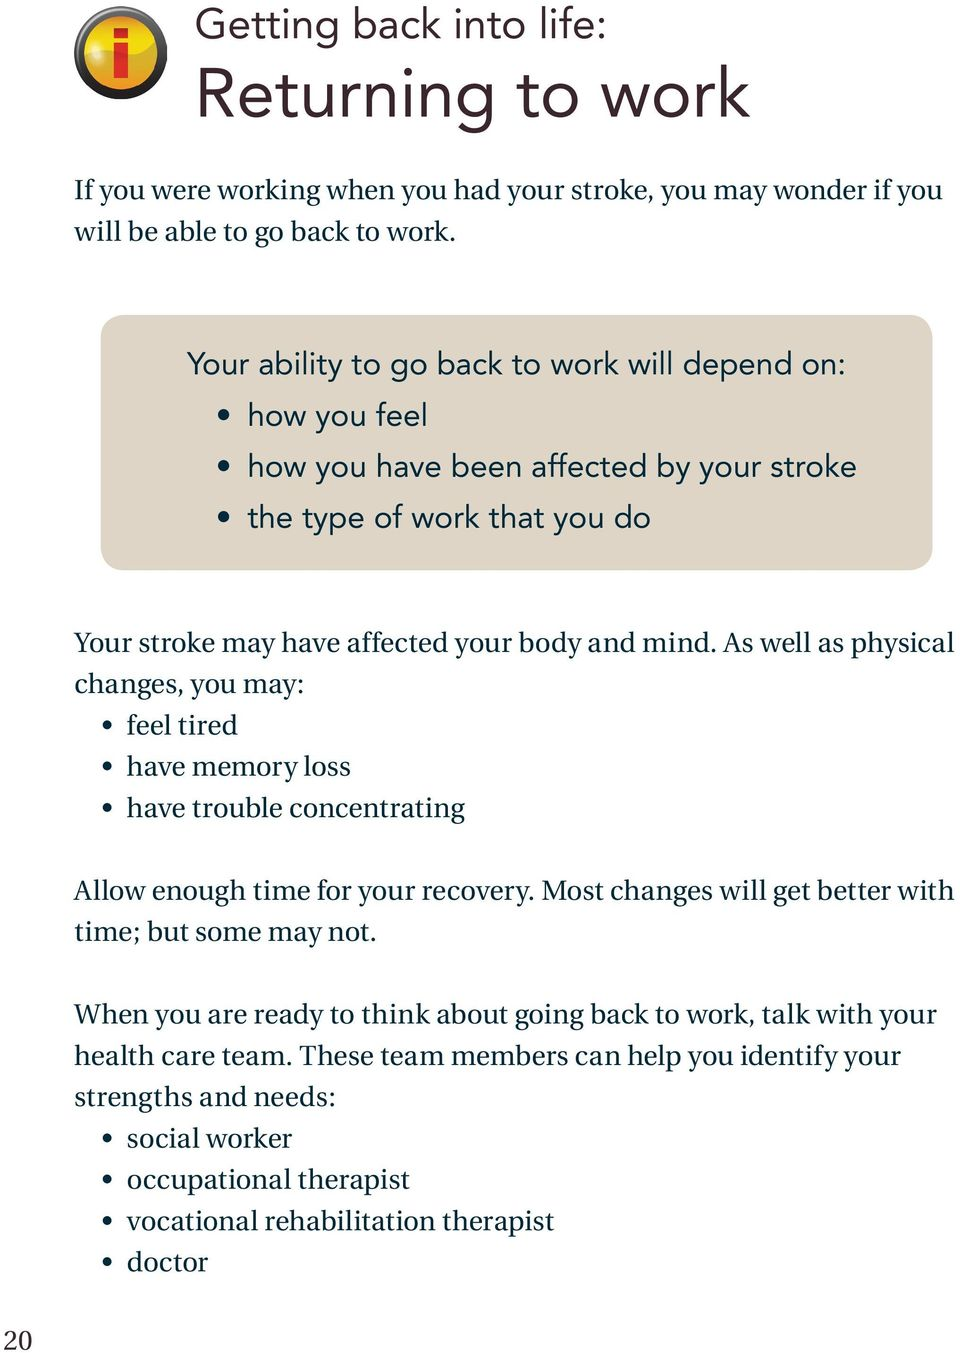 As well as physical changes, you may: feel tired have memory loss have trouble concentrating Allow enough time for your recovery. Most changes will get better with time; but some may not.